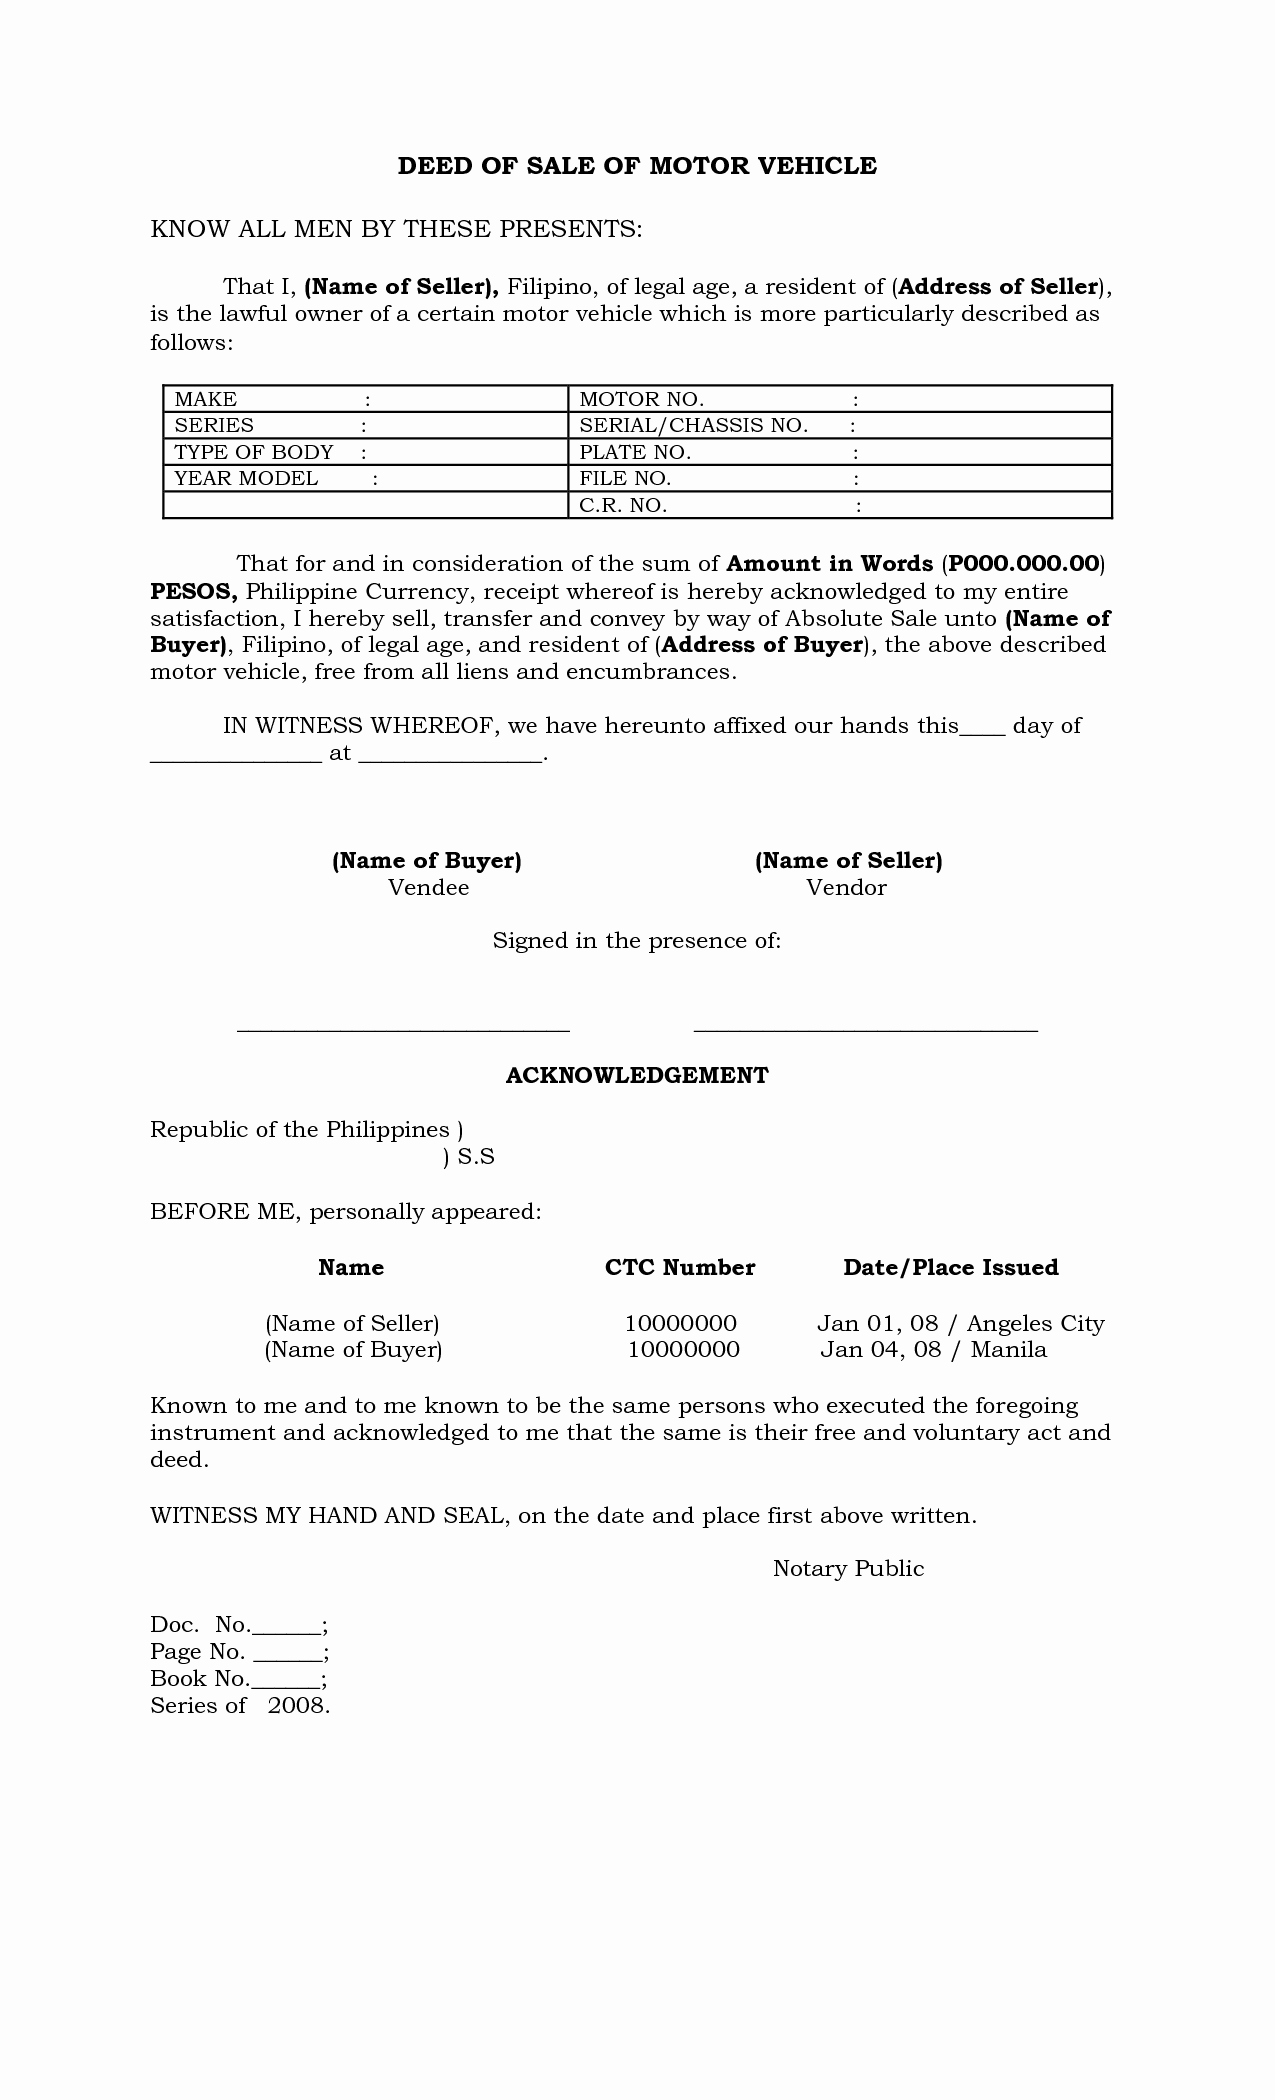 Car Deed Of Sale Pdf Unique Philippines Deed Of Sale Of Motor Vehicle by Batotoyako